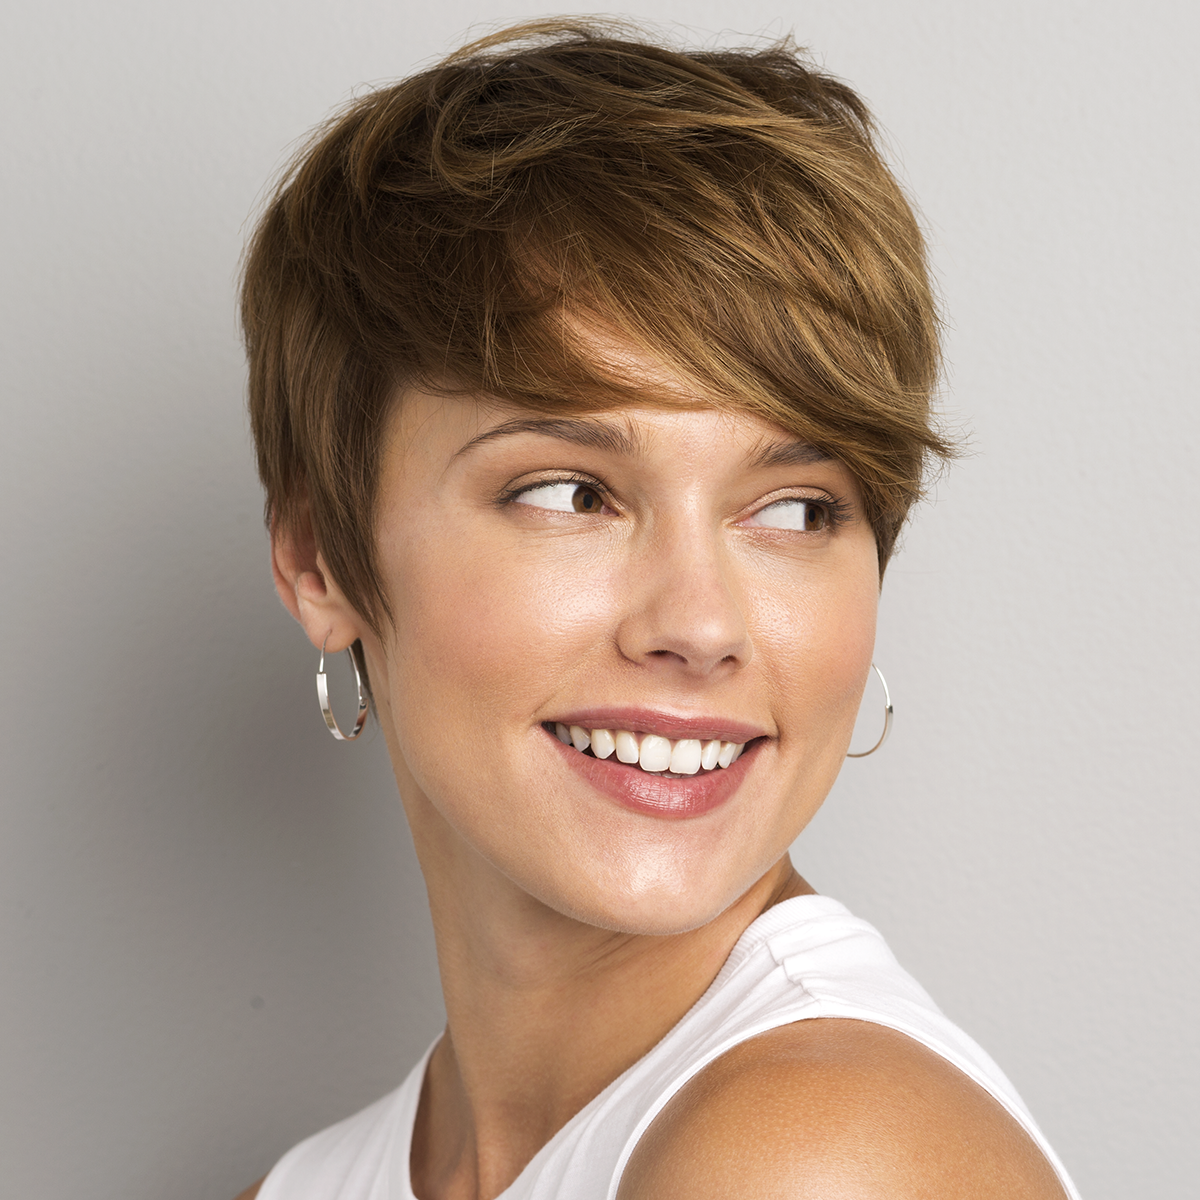 Cost Cutters women's pixie haircut